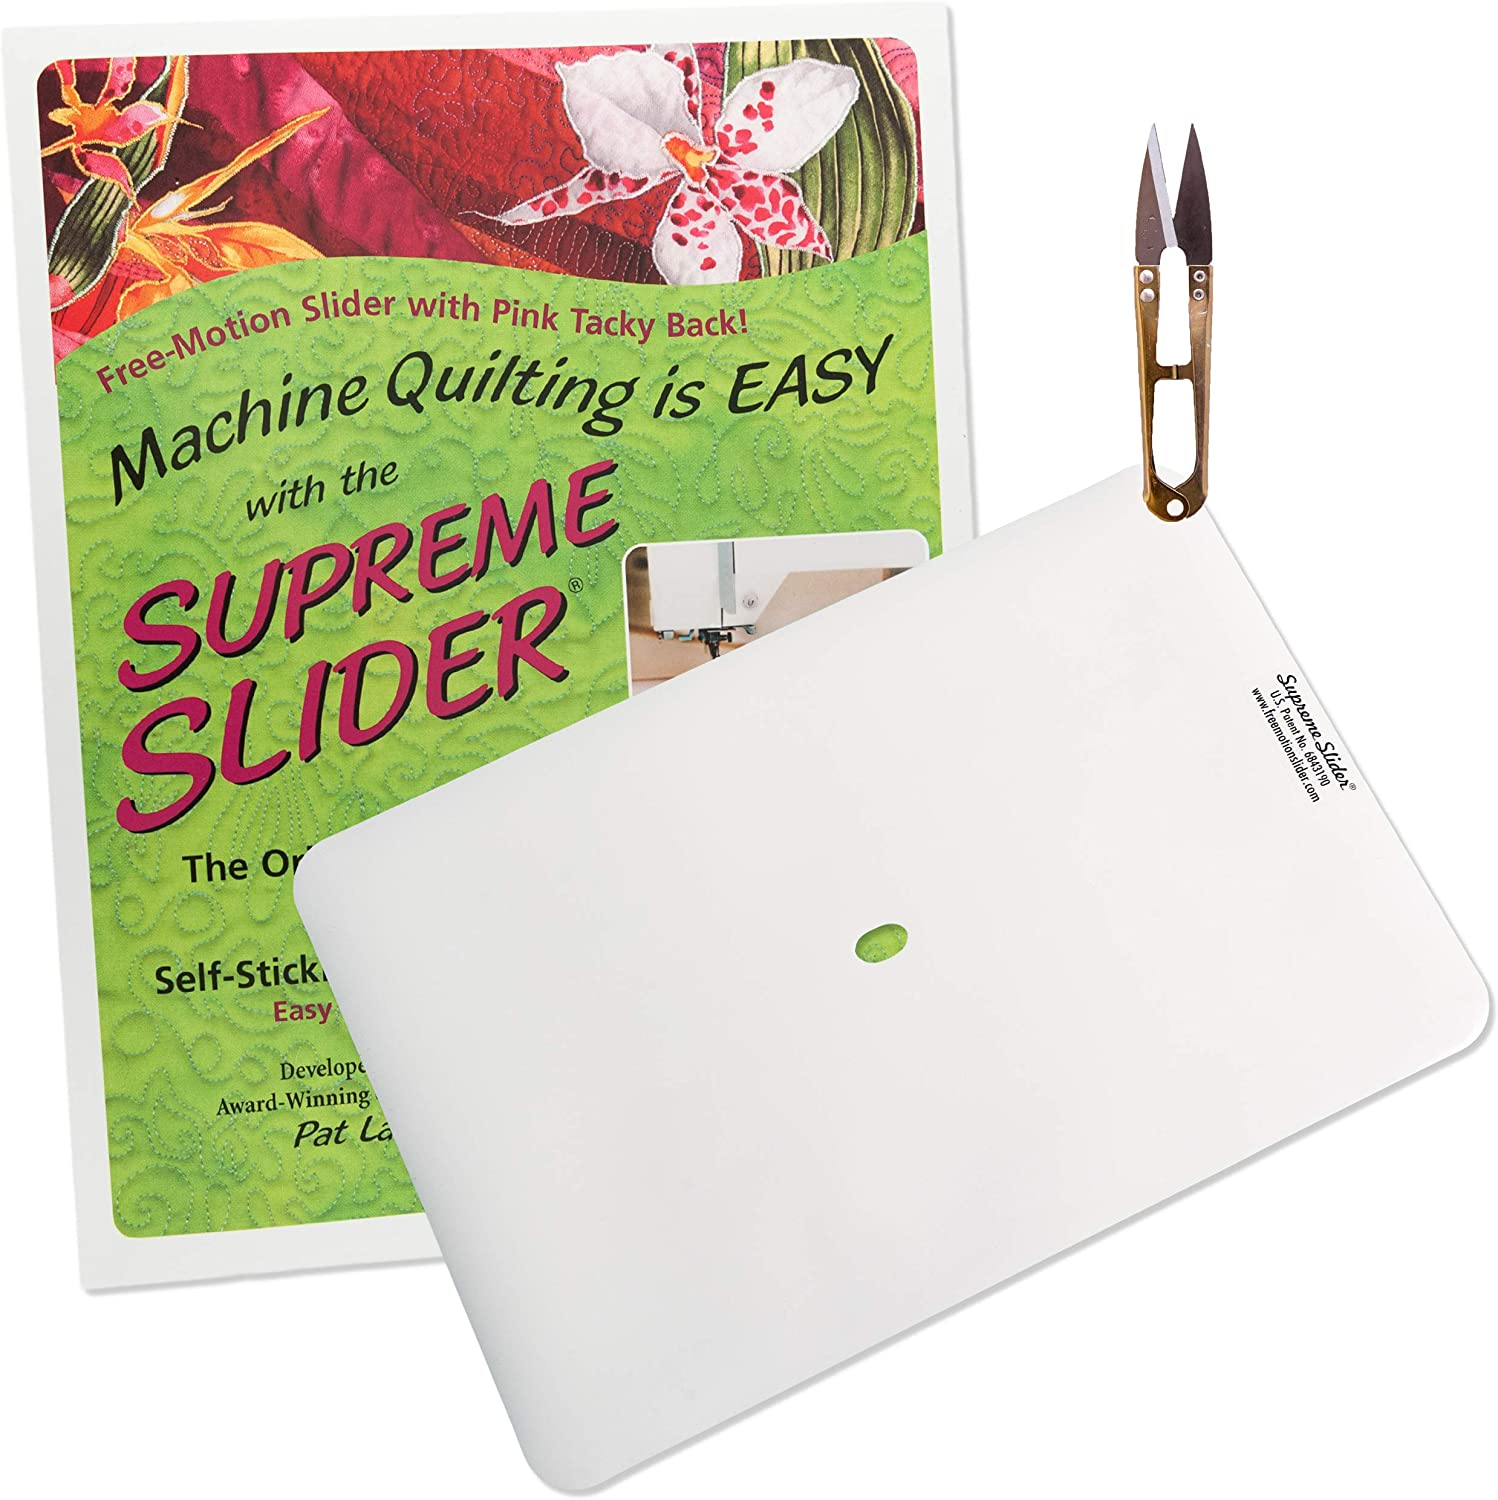 Supreme Slider Free Motion Quilting Supplies - Quilting Snippers | Thread Scissors | Quilting Accessories | Quilting Notions | Quilting Slider Mat | Free Motion Quilting Tools